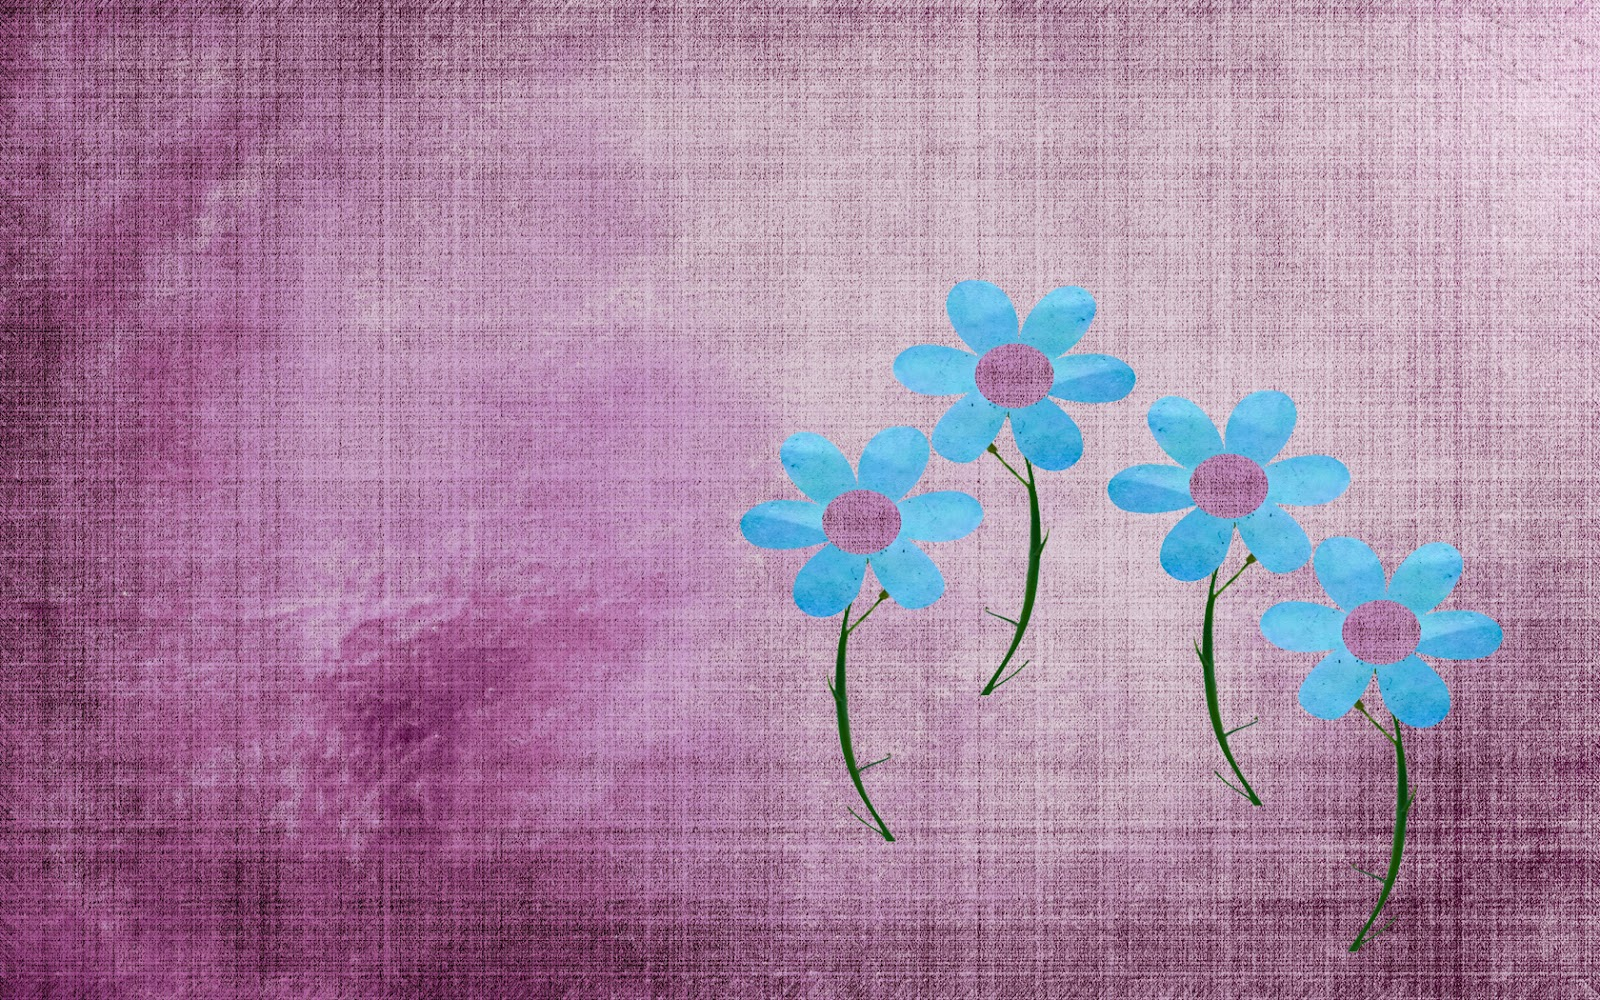 eletragesi blue flowers tumblr background images